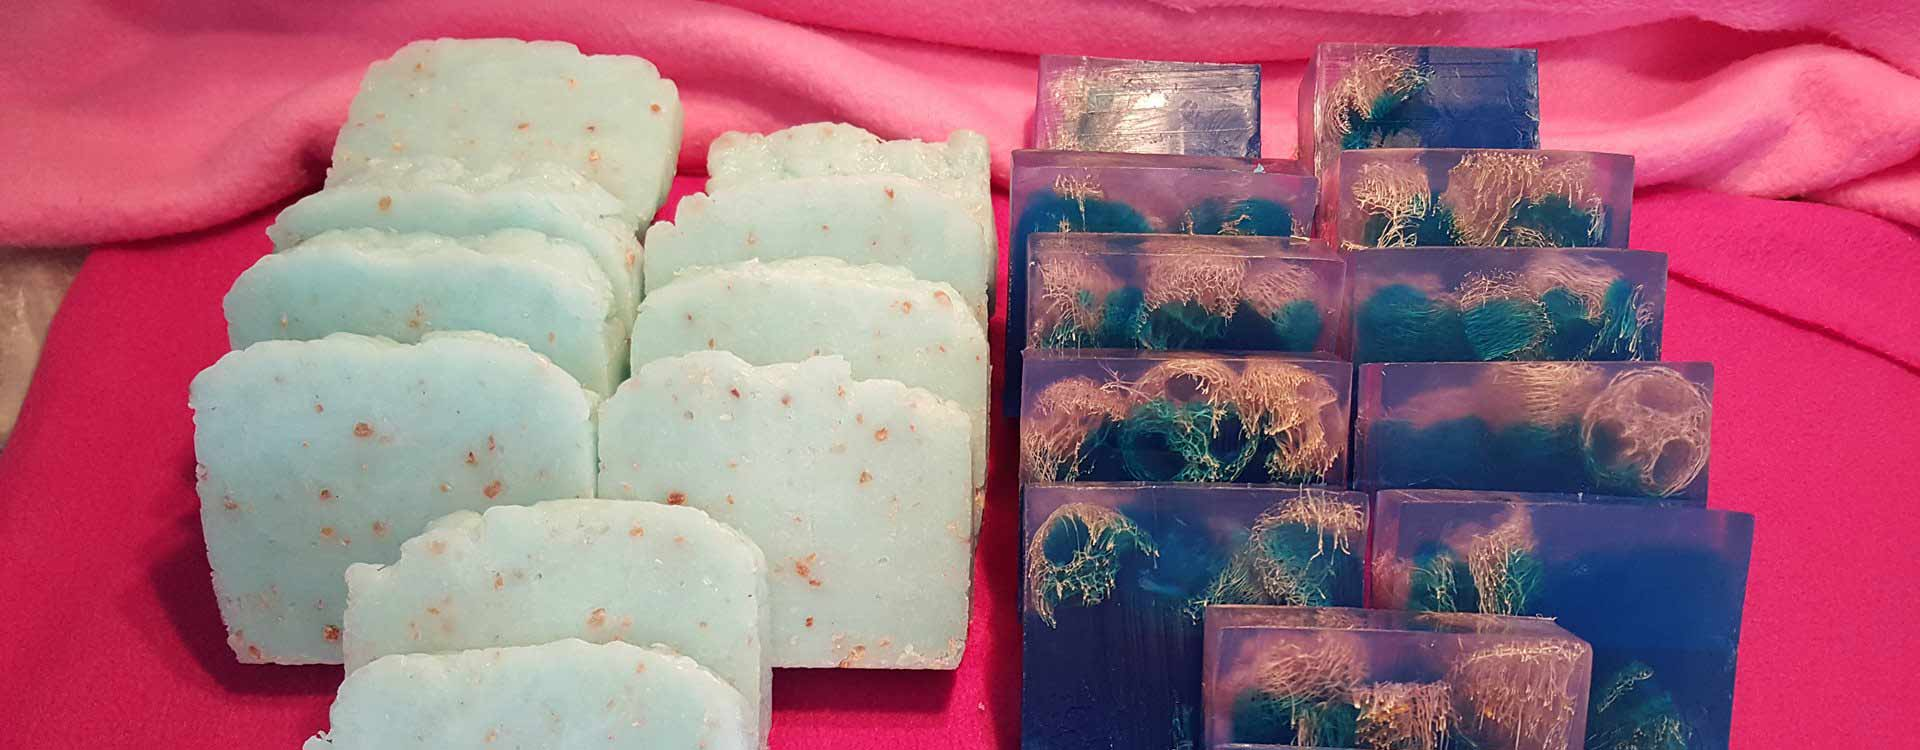 Handmade soaps, finest essential oils and wax